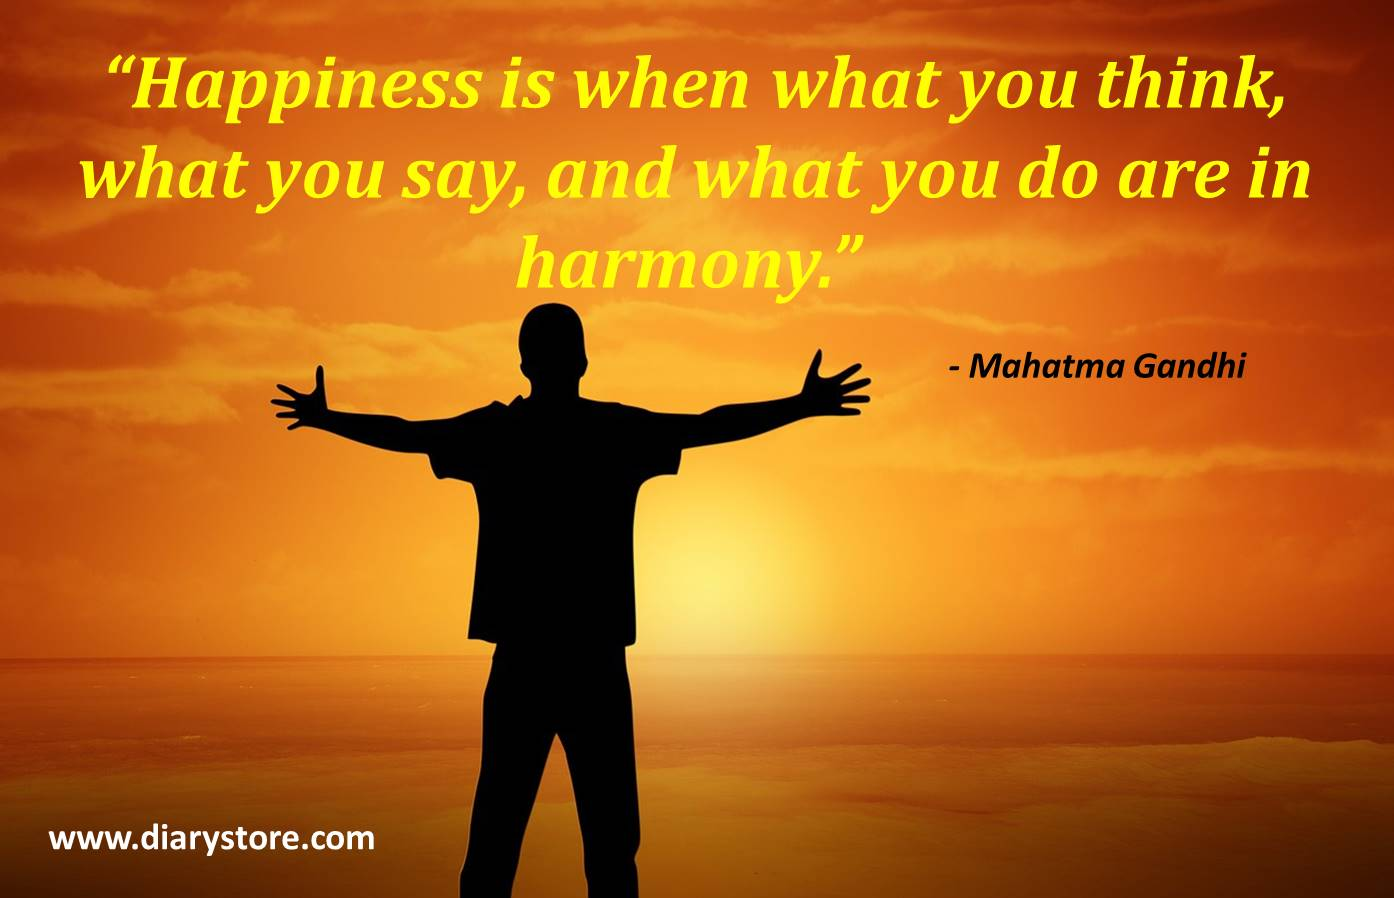 Inspirational Quotations Happiness Quotes  Happy Quotations Most Inspirational Quotes